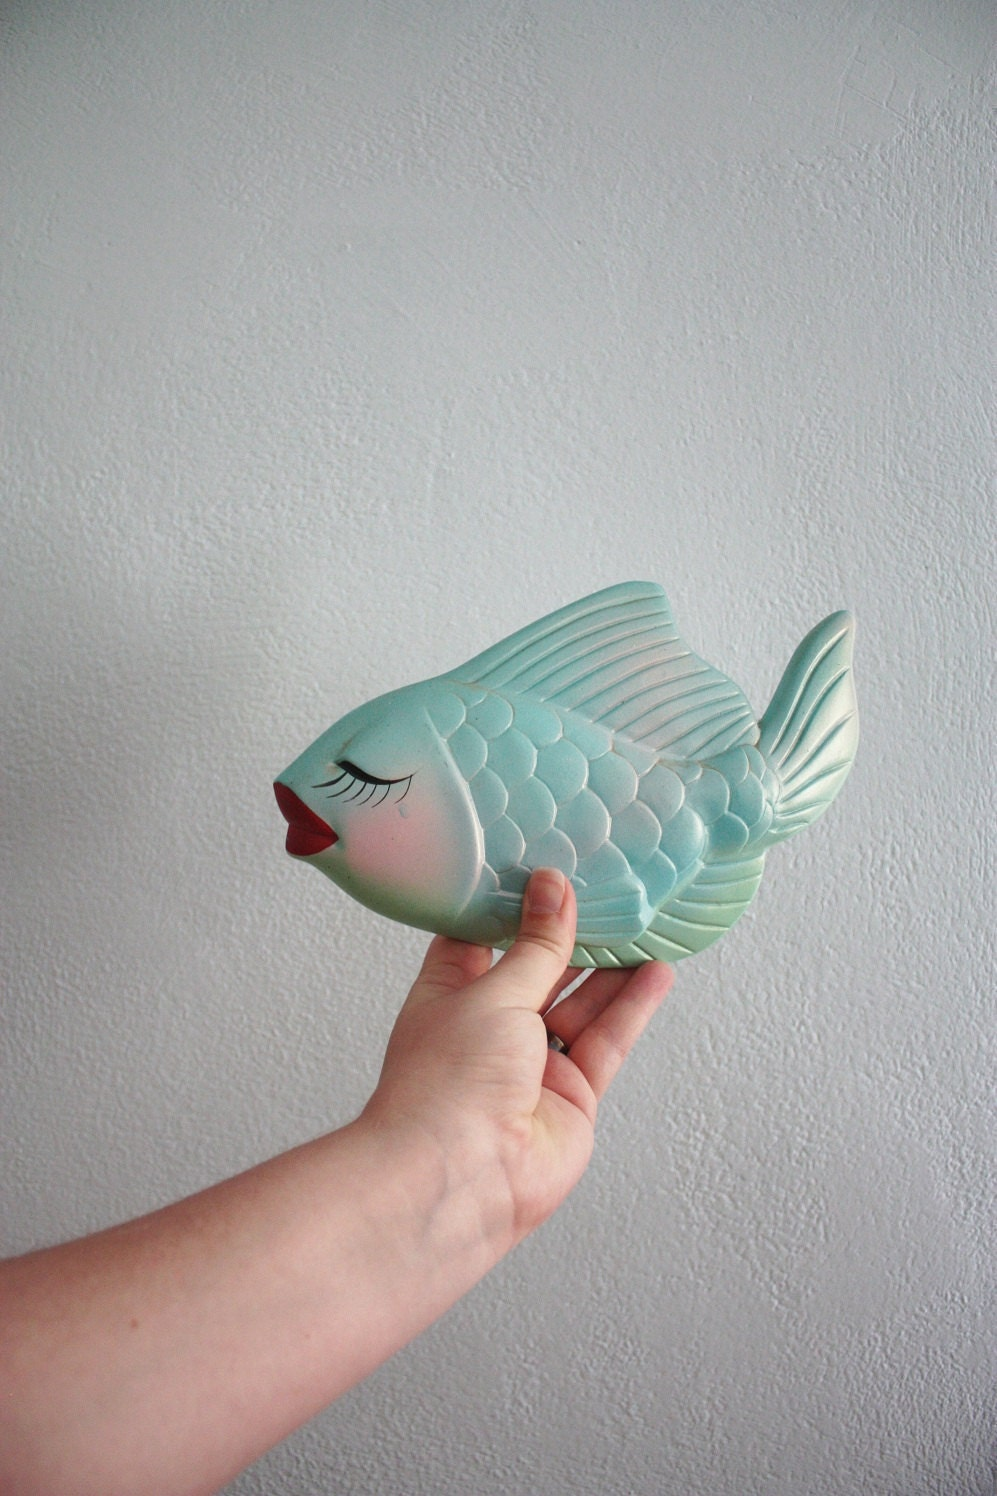 vintage 60s chalkware fish - Pucker Up pastel blue pink with ruby red lips and long eyelashes kitsch - BombshellsandBabes